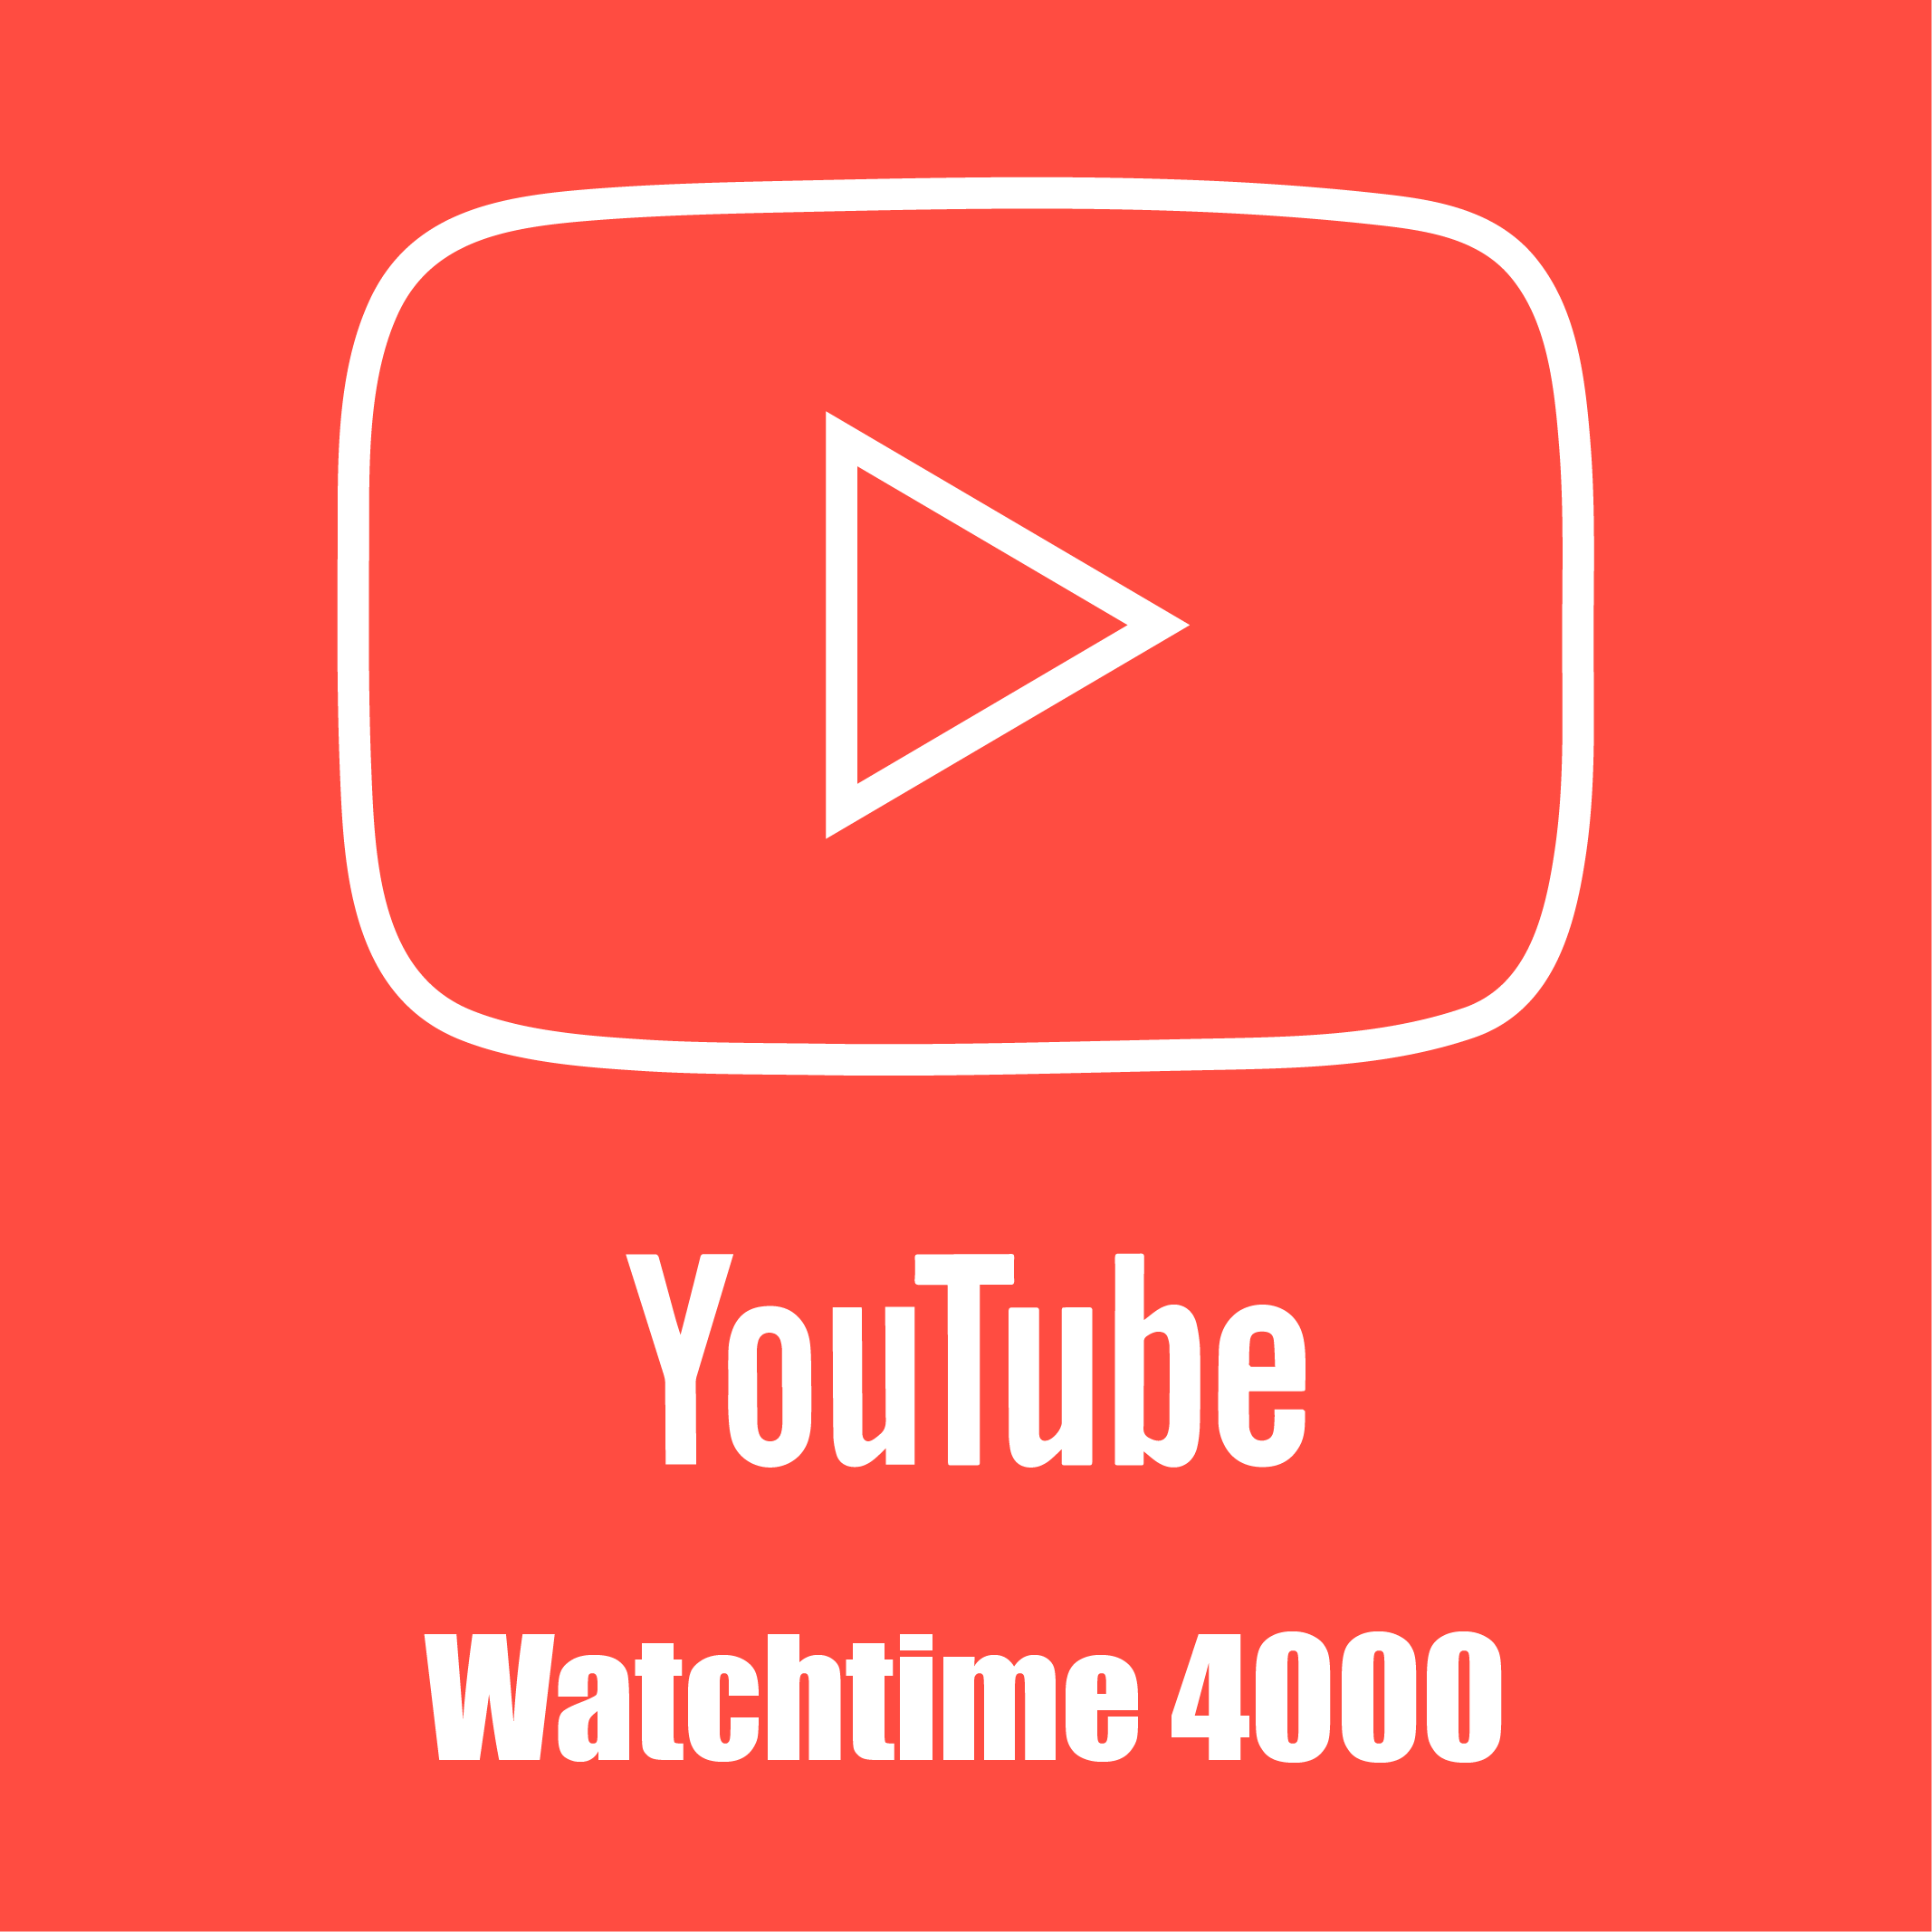 Get the most convenient package at buying YouTube watch time